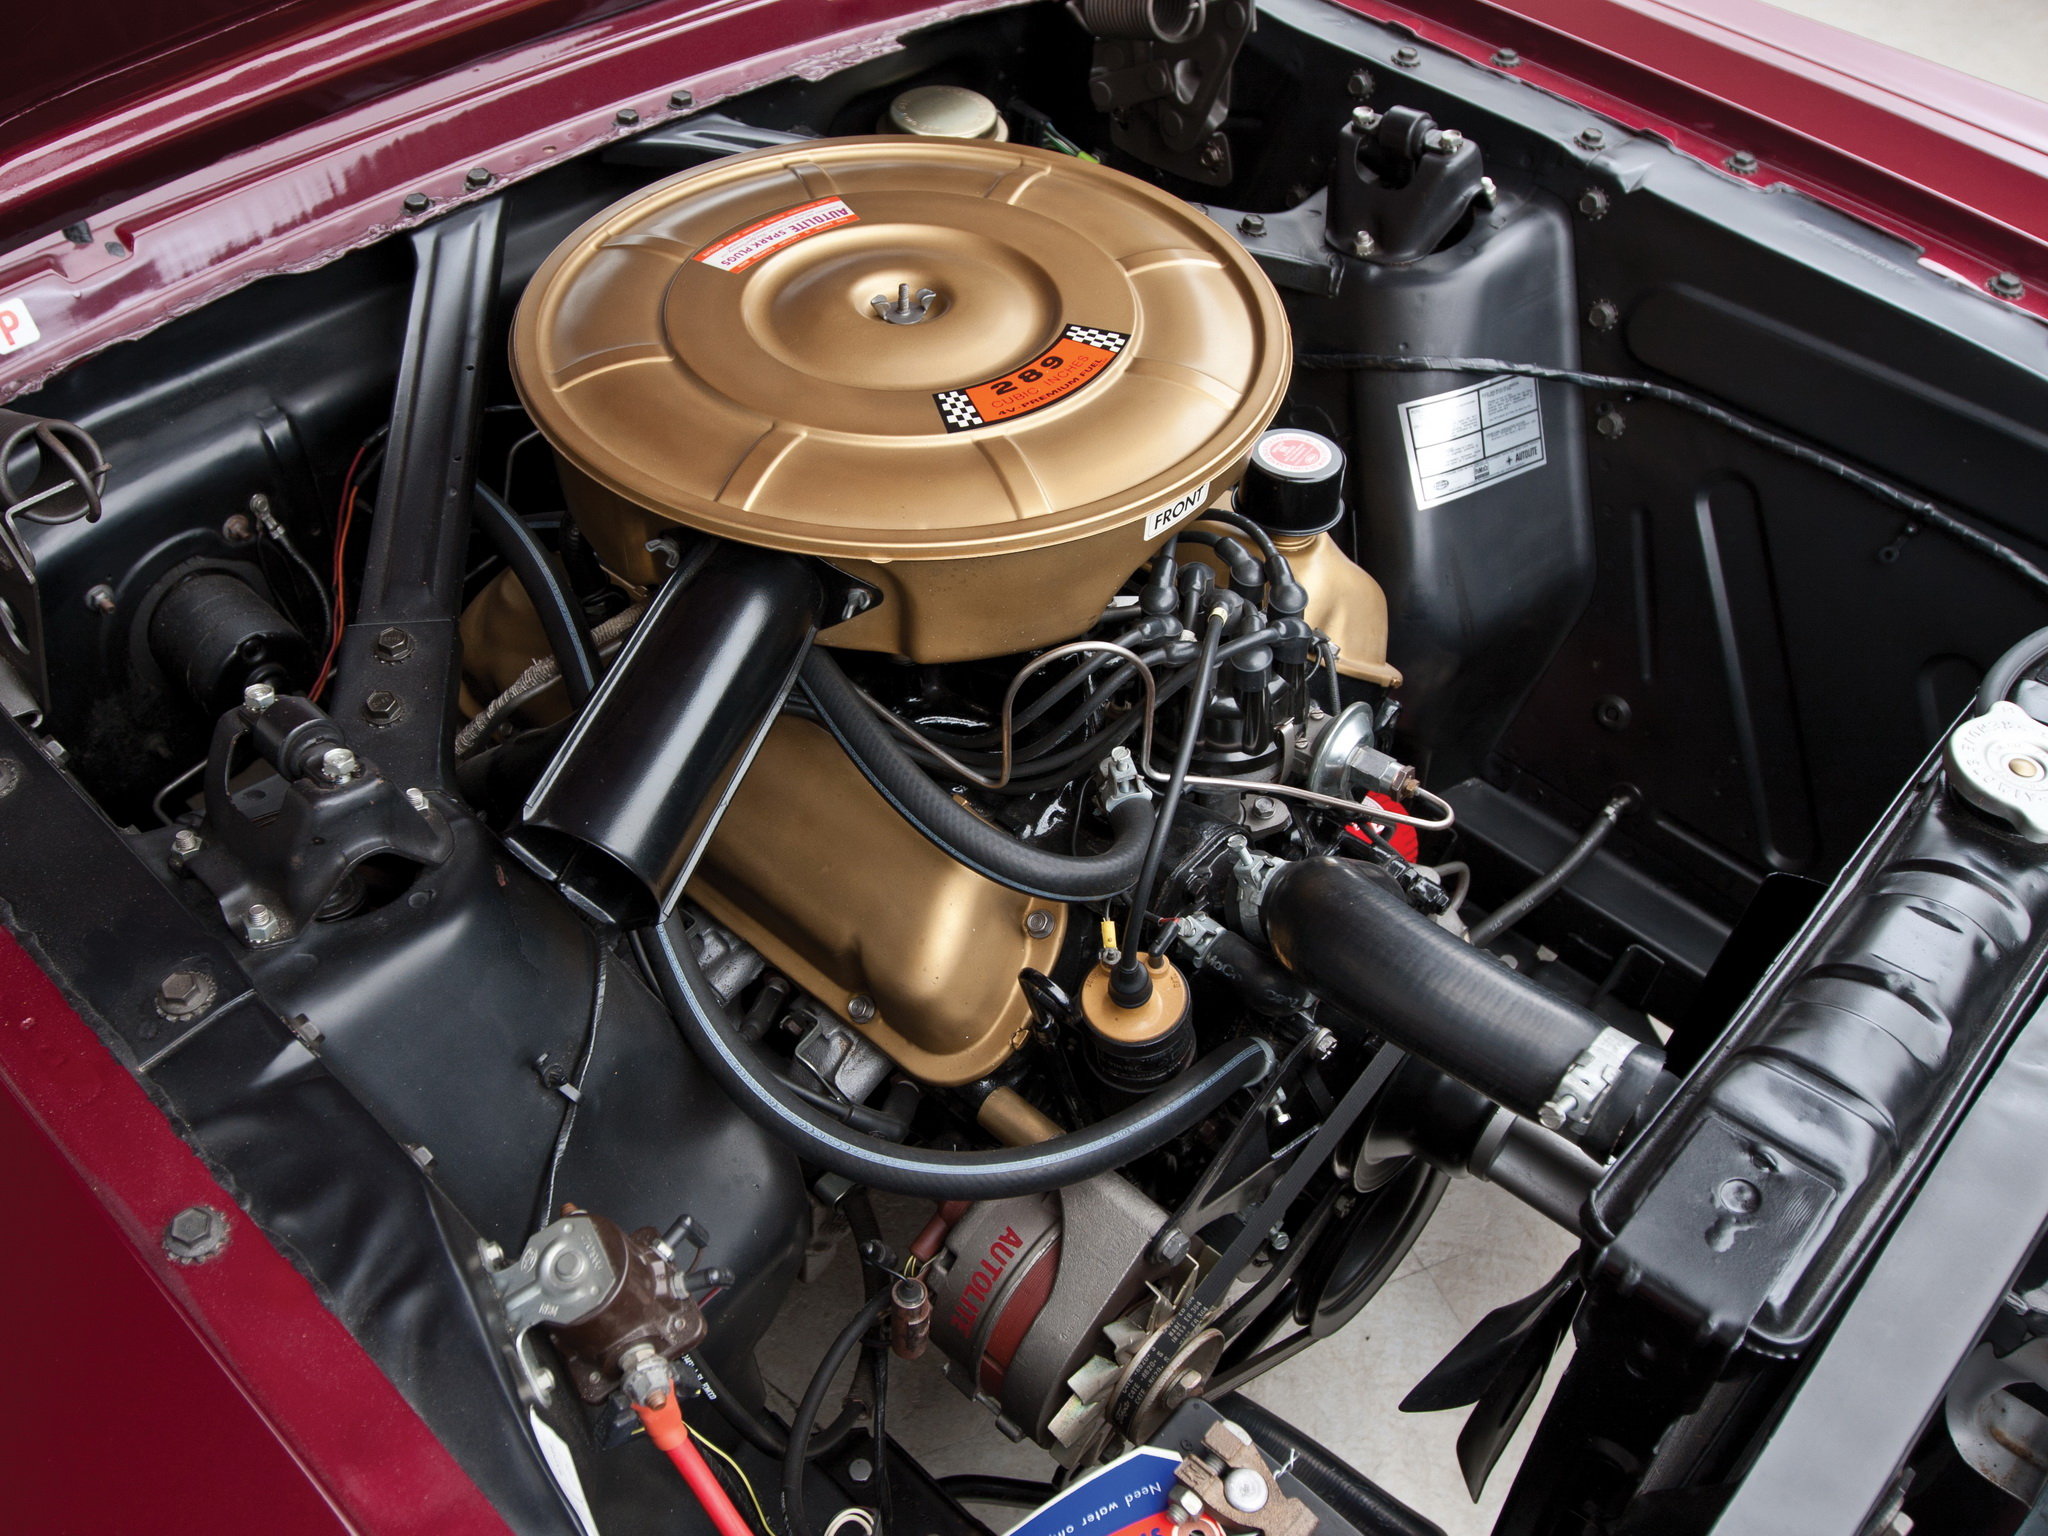 1965 mustang fastback engine - photo #6